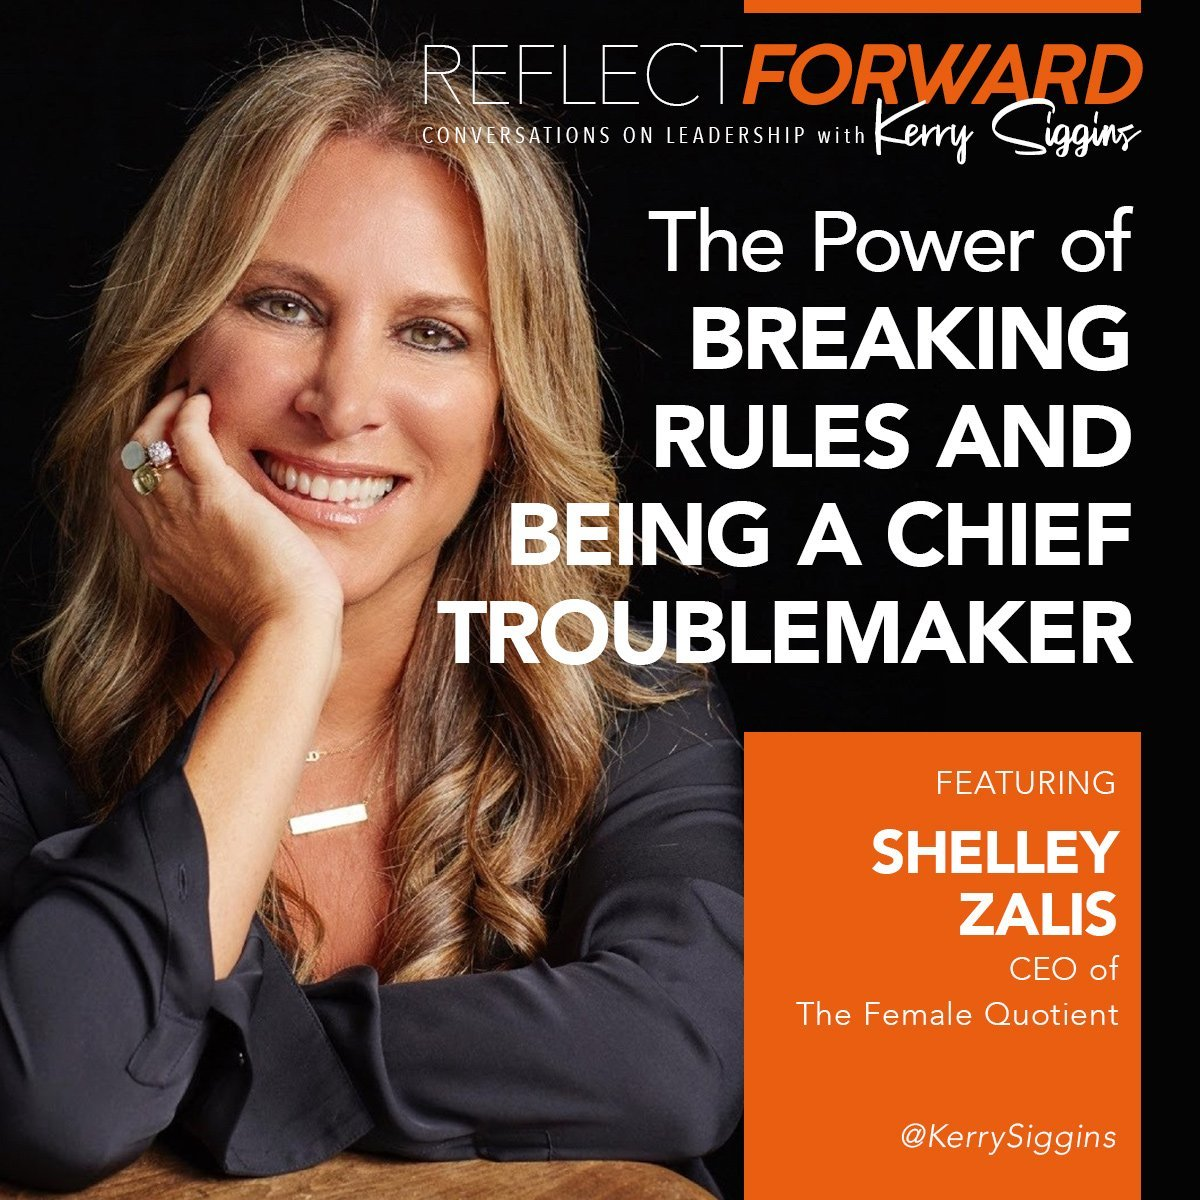 The Power of Breaking Rules and Being the Chief Troublemaker Kerry Siggins Reflect Forward